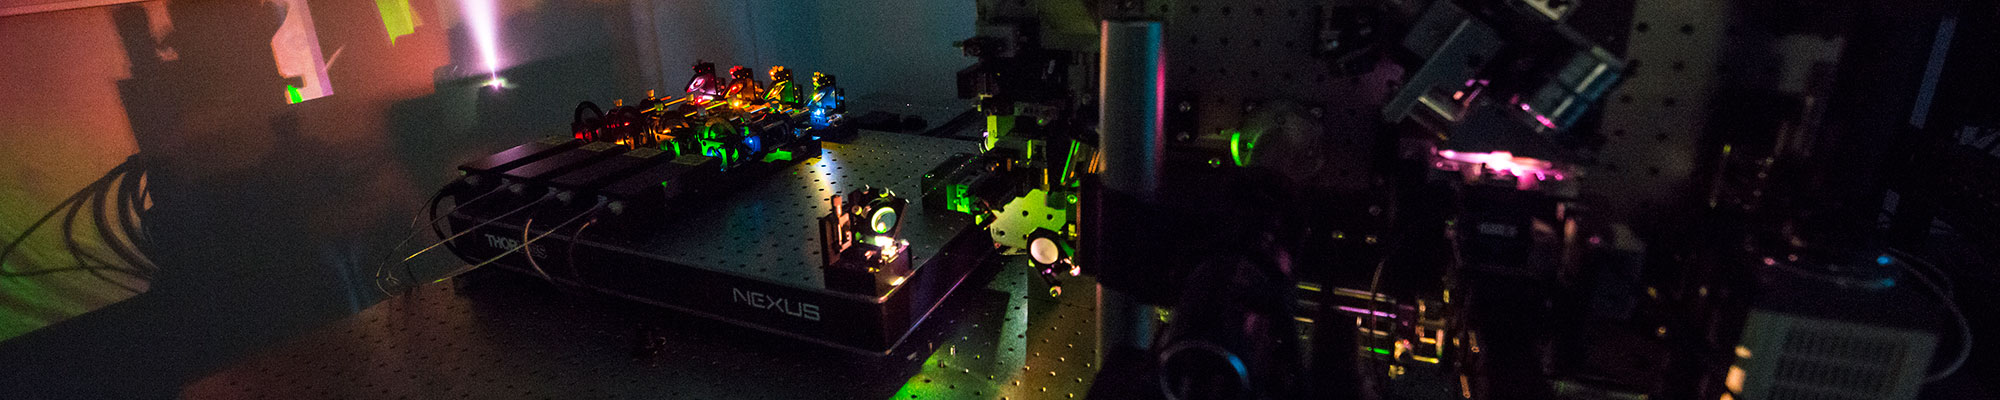 Lattice light sheet microscope